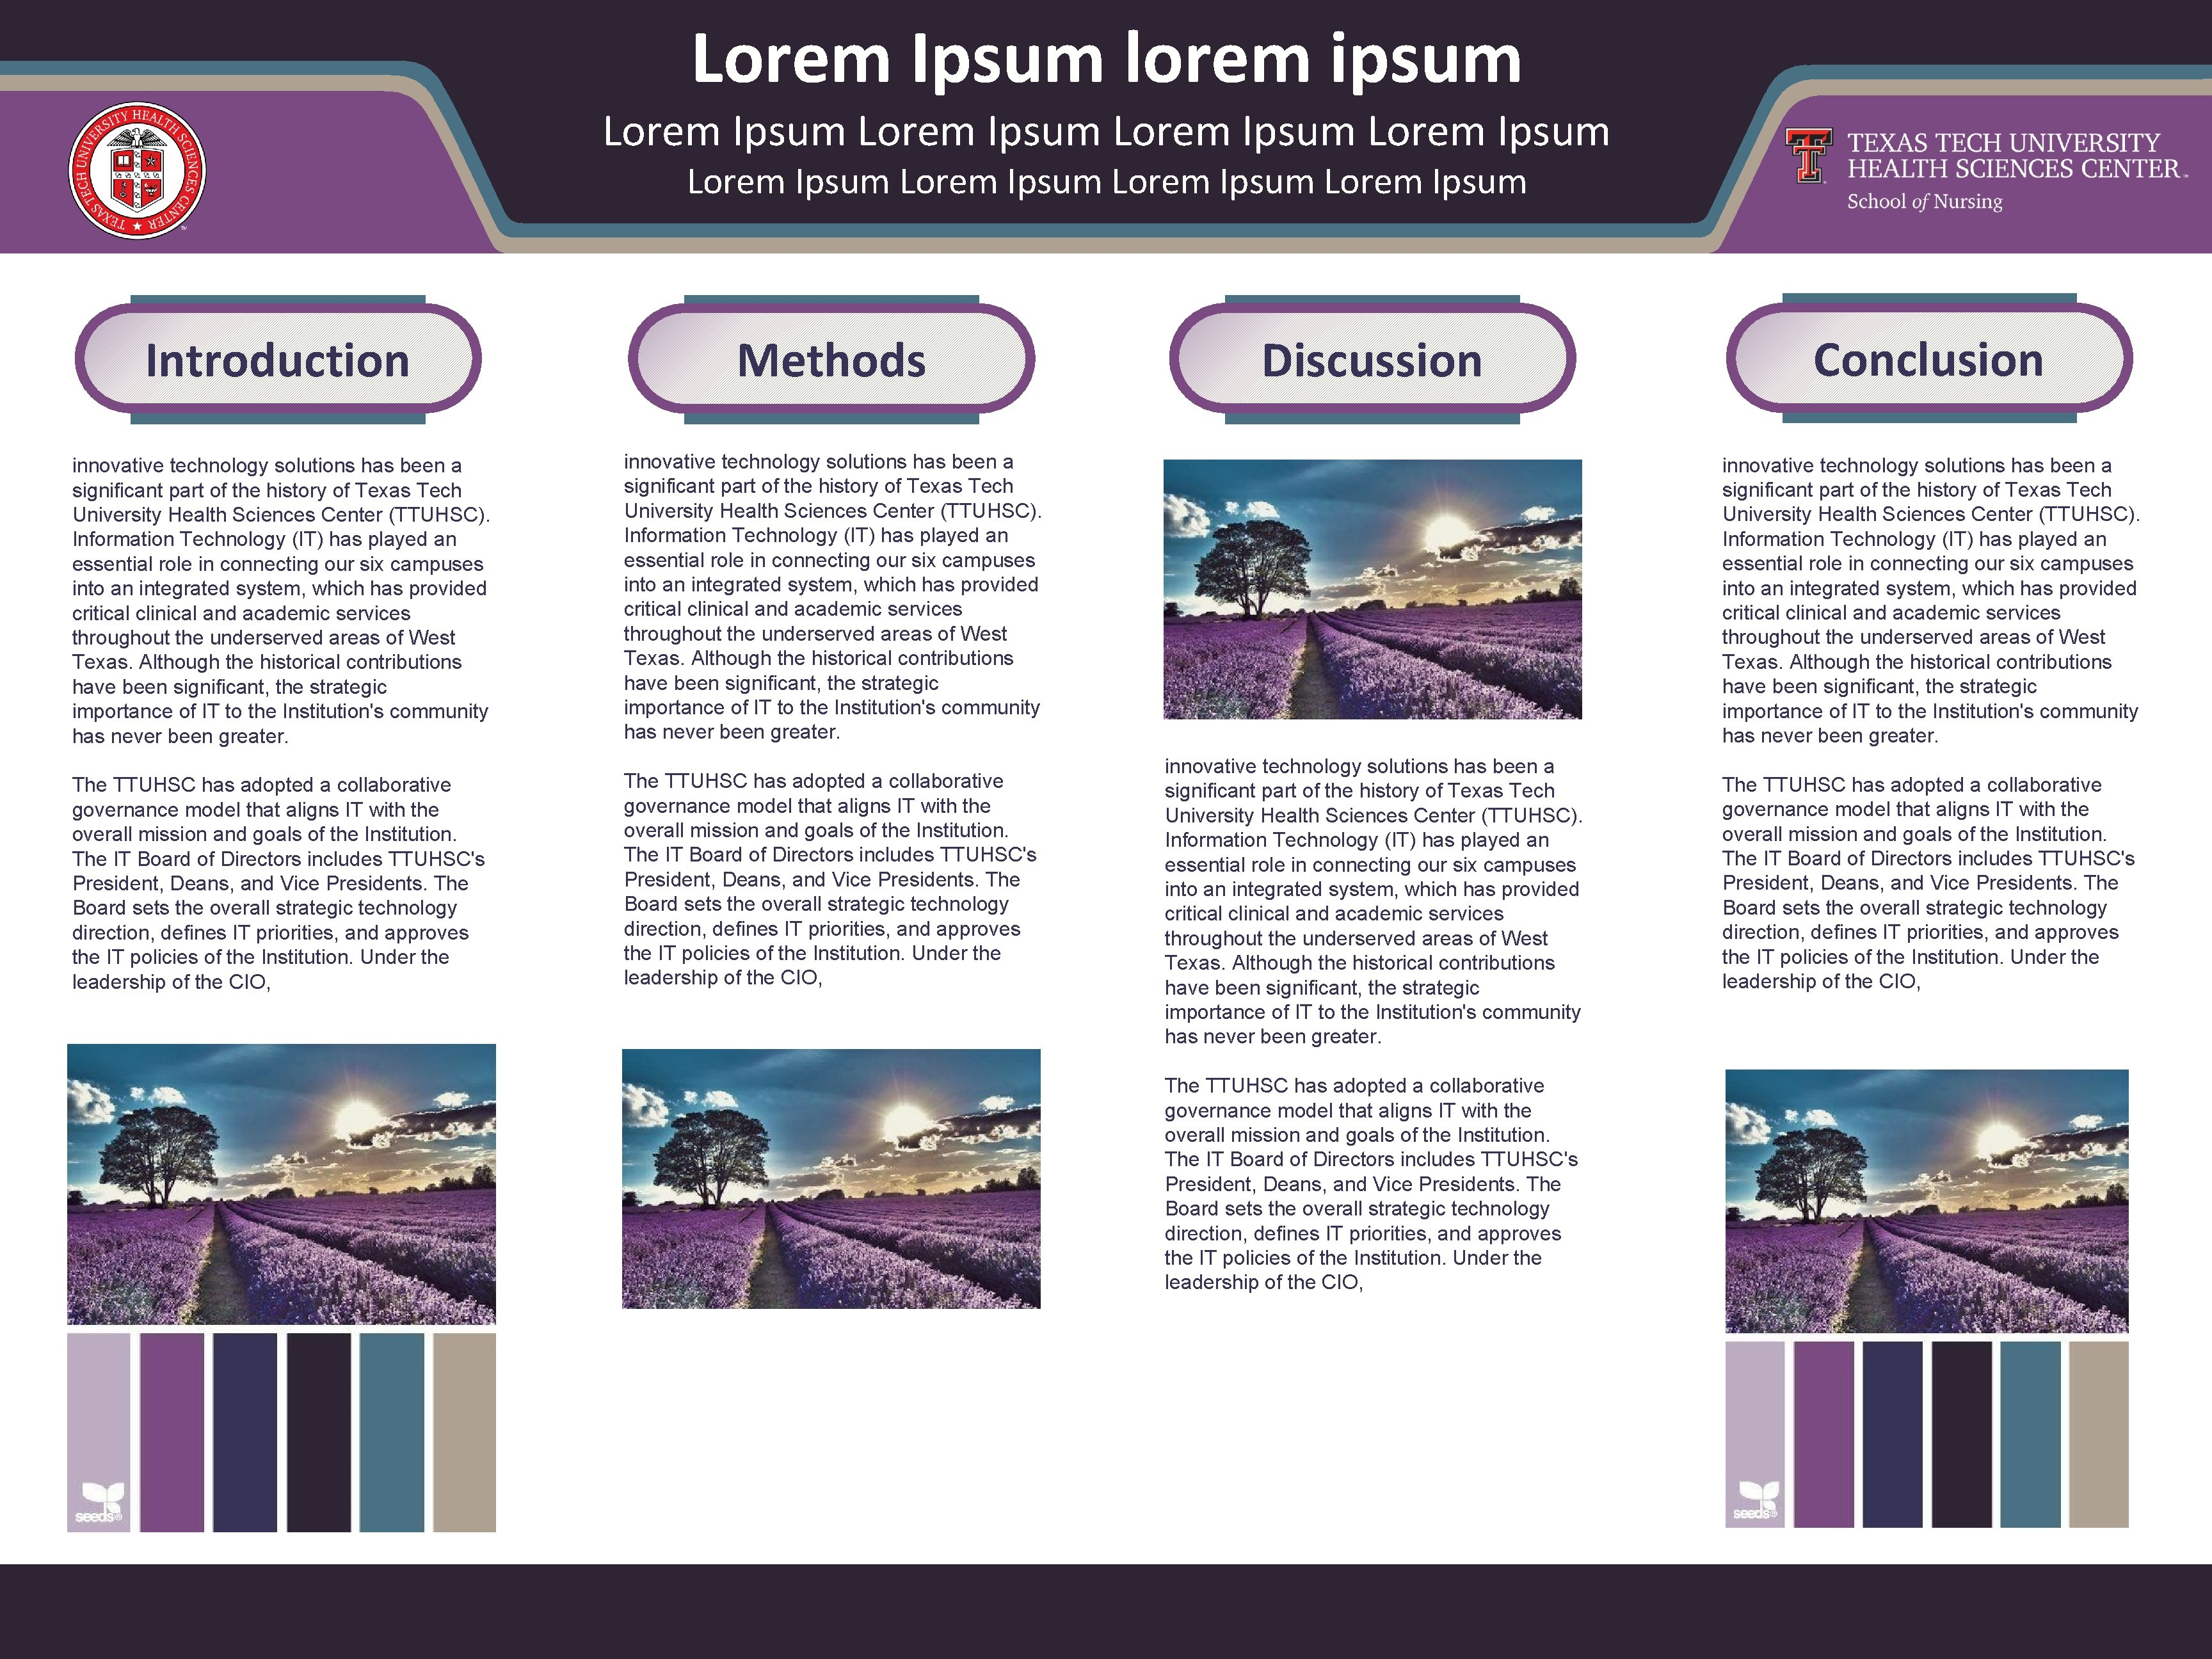 Lorem Ipsum lorem ipsum Lorem Ipsum Lorem Ipsum Introduction Methods innovative technology solutions has